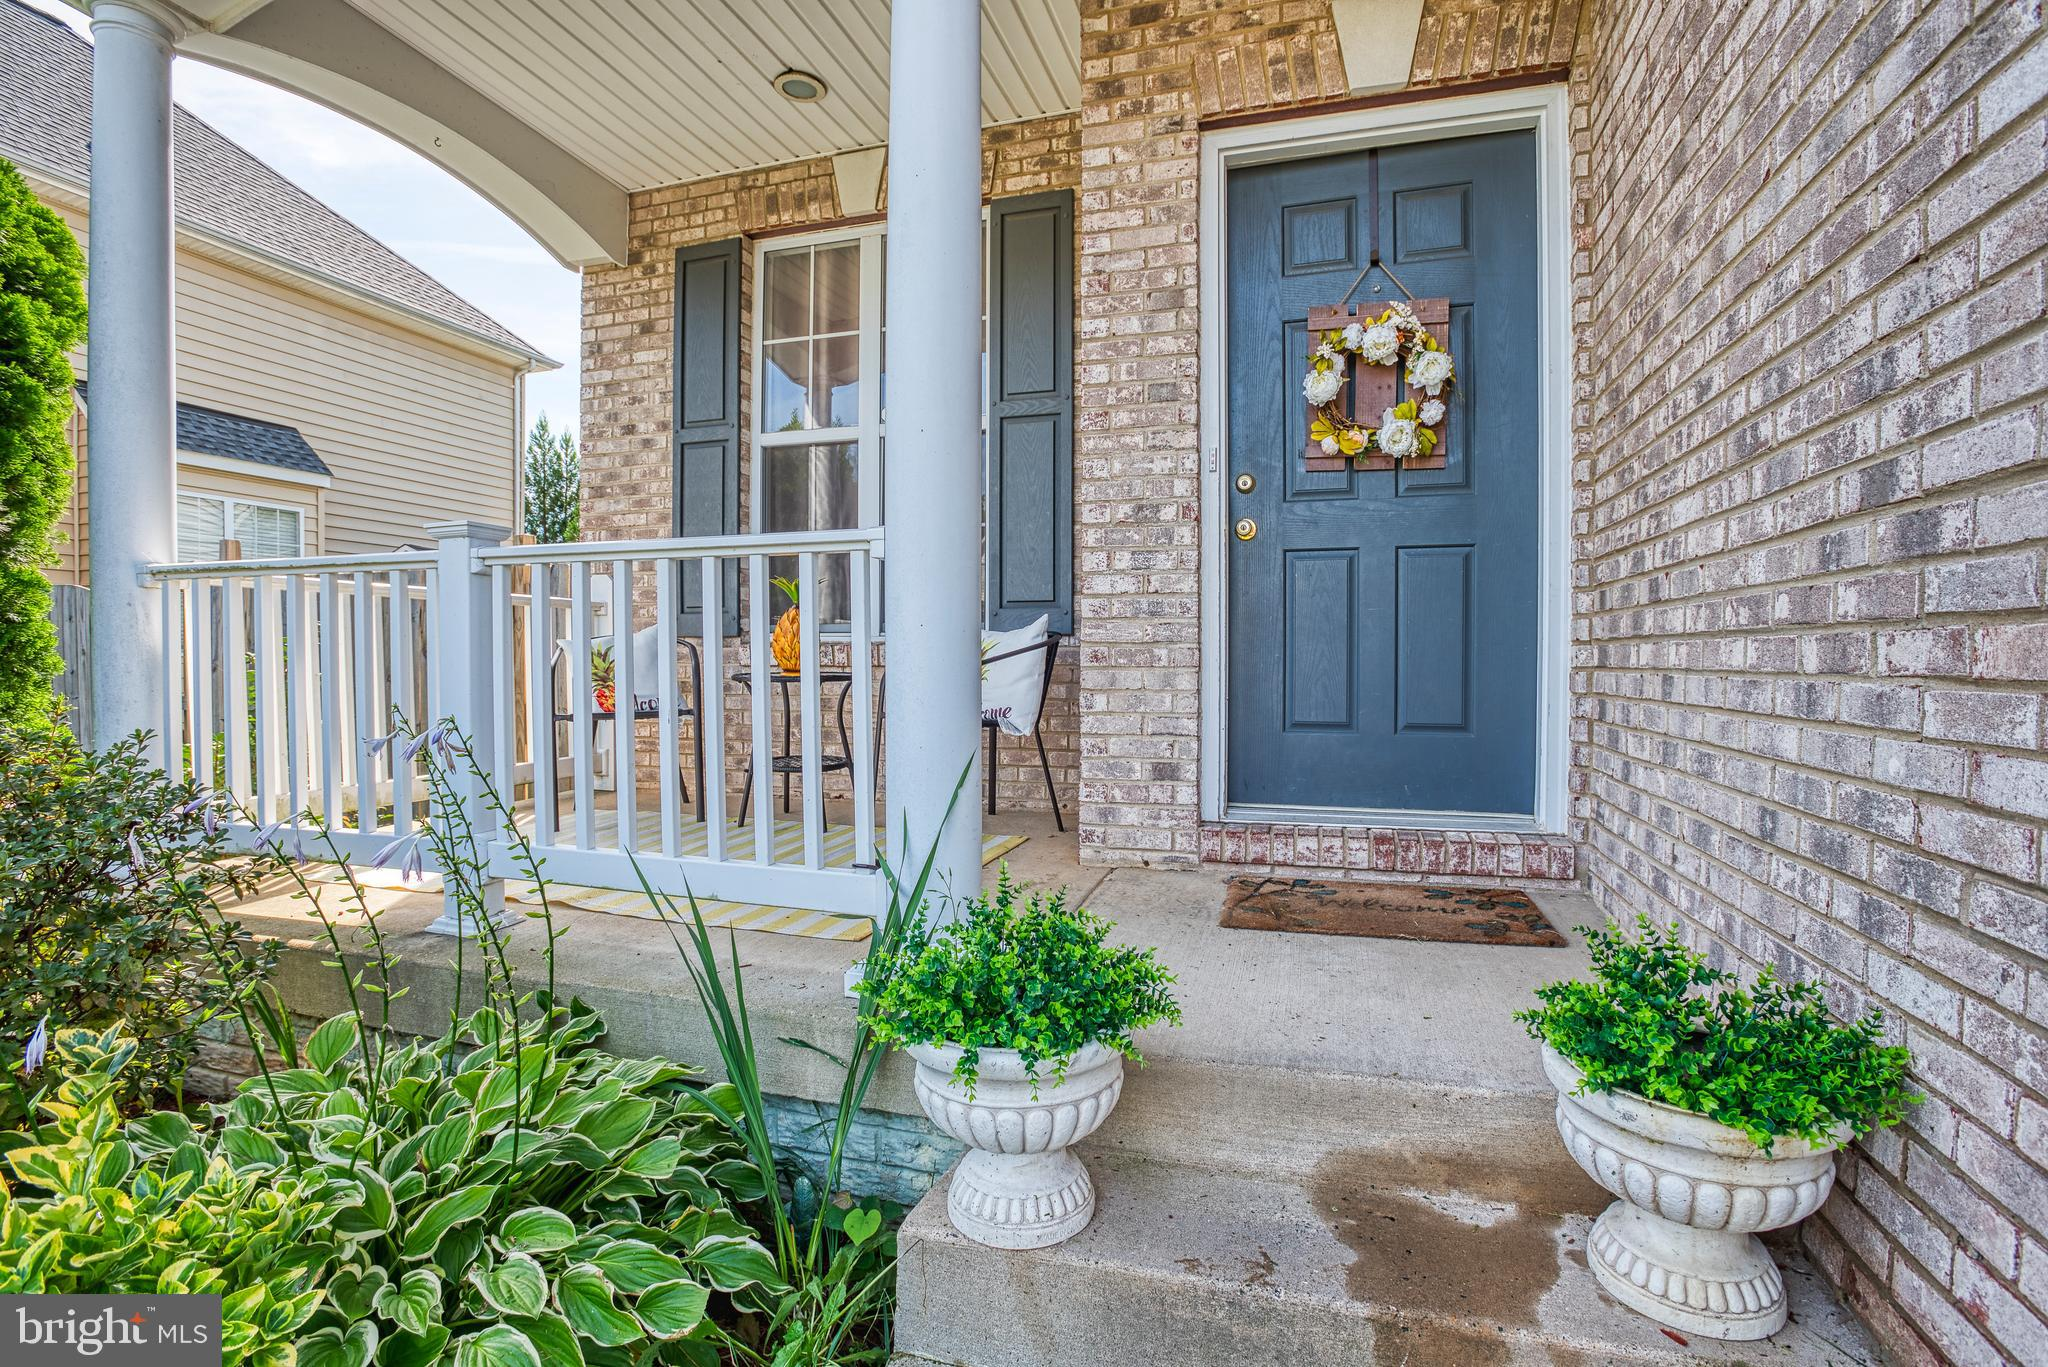 Gorgeous  3bd 3 1/2 Bath home with hardwood floors T/O first floor. Fully finished basement w/ extra room being used as 4th bedroom. S/S Appliances and Granite in sleek kitchen. Deck and fully fenced and private wooded backyard. Will not last!